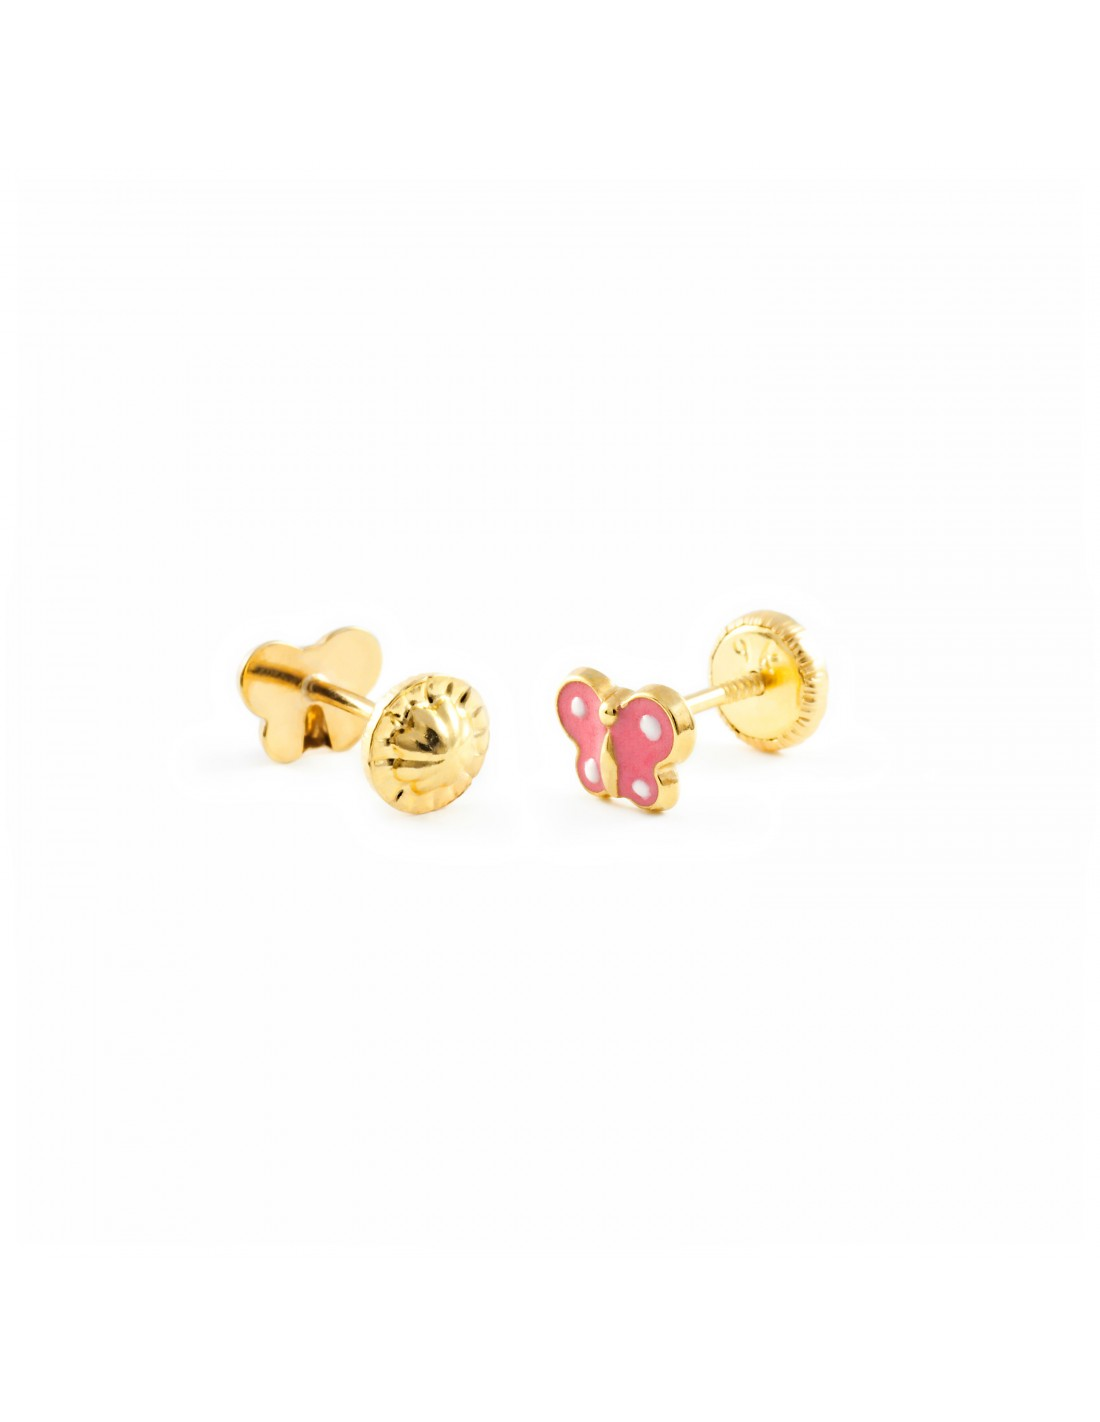 boucles d 39 oreilles enfant papillon mail rose or jaune 9 carats. Black Bedroom Furniture Sets. Home Design Ideas